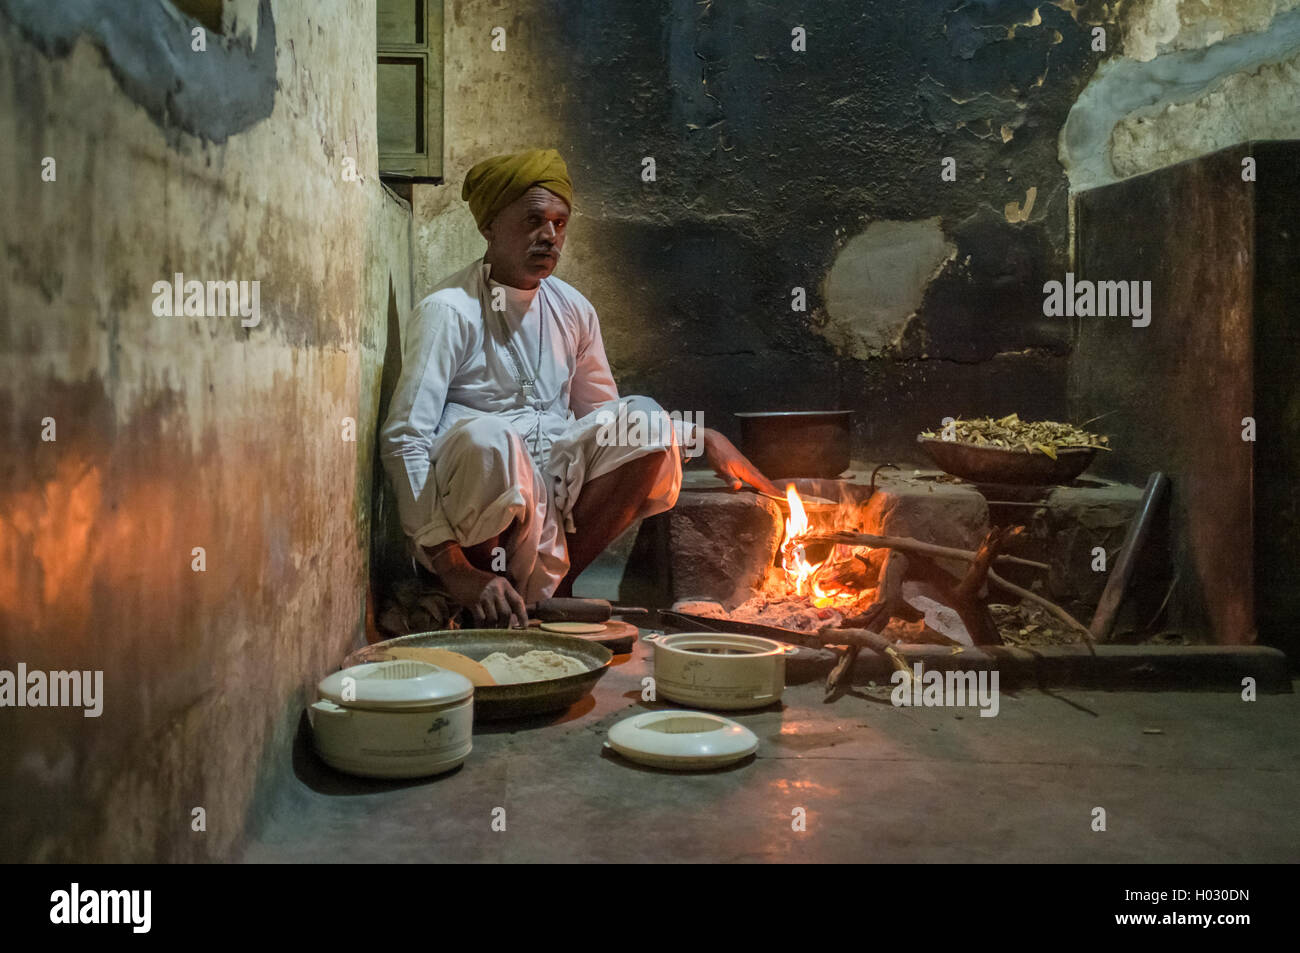 GODWAR REGION, INDIA - 12 FEBRUARY 2015: Indian man dressed in traditional clothes makes chapati on open fire in - Stock Image